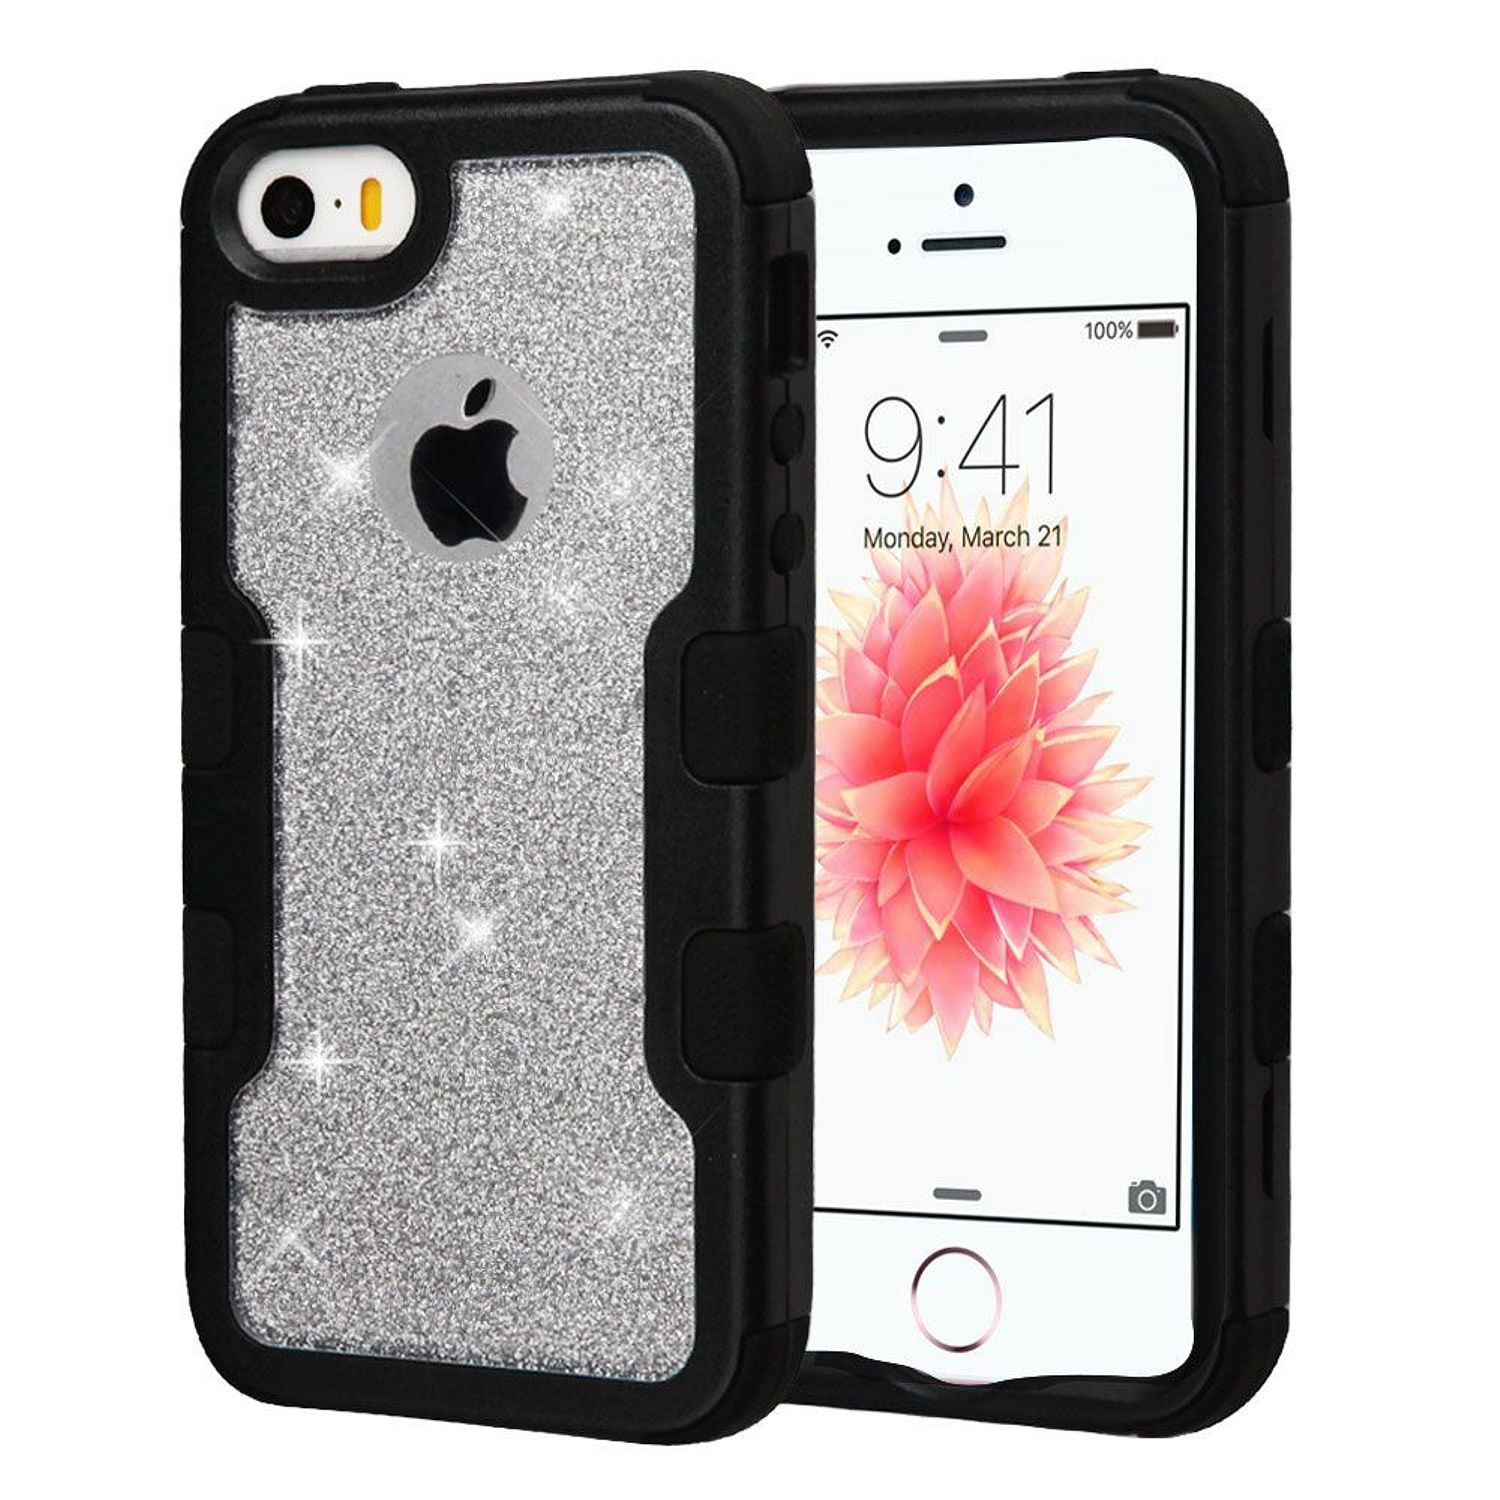 iPhone SE Case, iPhone 5S Case, by Insten Tuff Dual Layer [Shock Absorbing] Hybrid Glitter Hard Plastic/Soft Silicone Case Cover For Apple iPhone 5/5S/SE, Black/Silver